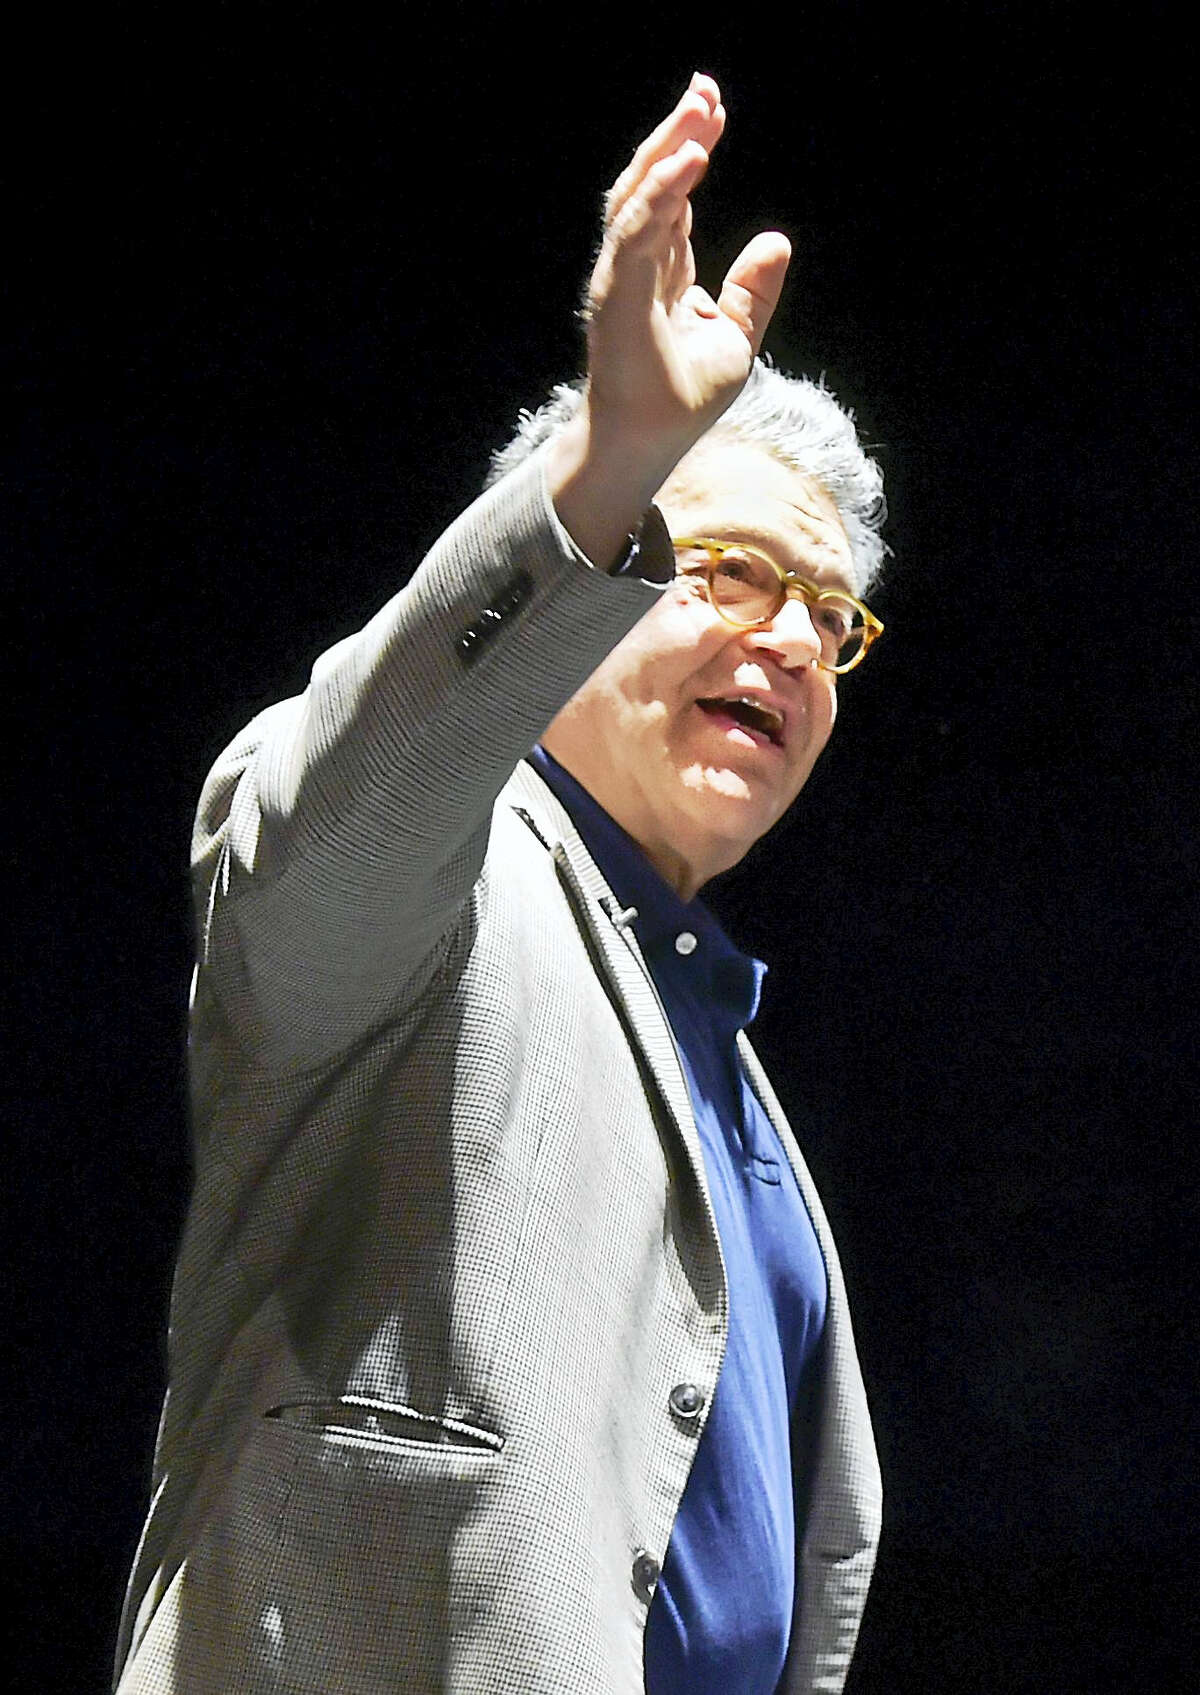 """(Peter Hvizdak - Hearst Connecticut Media) New Haven, Connecticut: July 28, 2017. U.S. Senator Al Franken of Minnesota, satirist, comedian, and author of the book """"Giant of the Senate"""" Sunday at the Shubert Theatre in New Haven during a discussion about his book with WNPR radio personality Colin McEnroe. The event was sponsored by R.J. Julia Booksellers of Madison."""